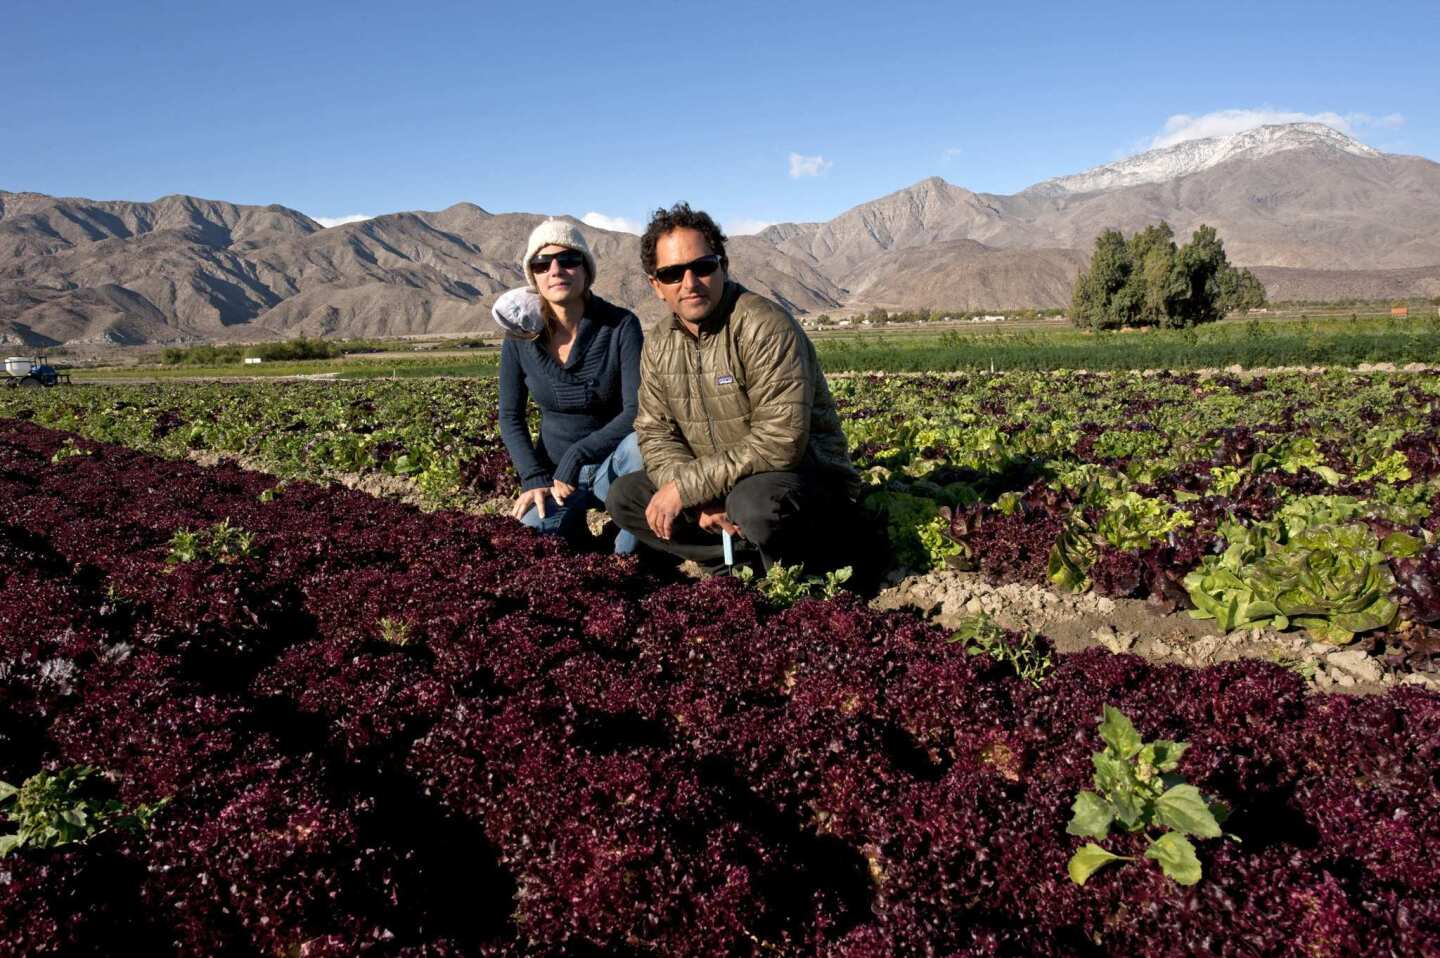 David Retsky and Megan Strom of County Line Harvest next to a row of redleaf lettuce in Thermal.